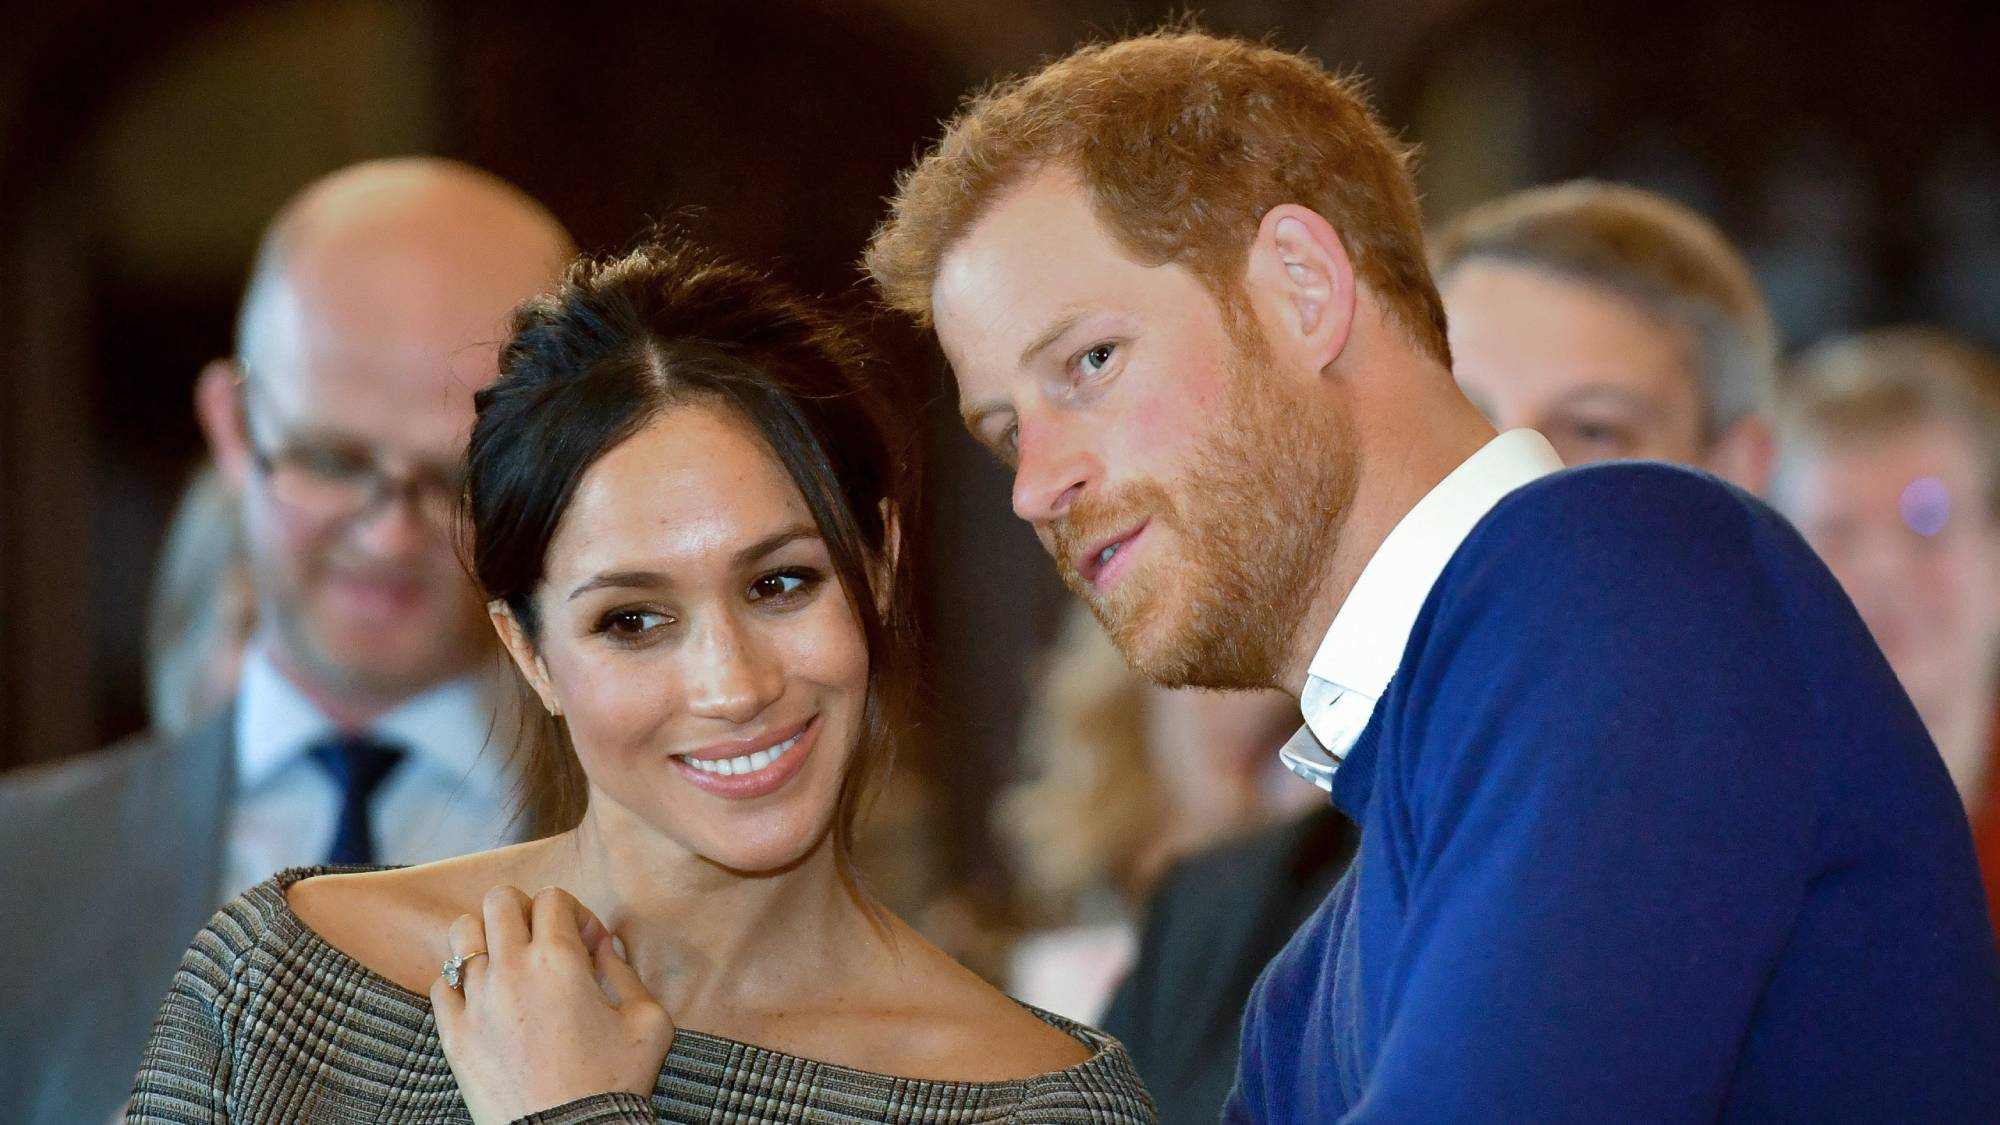 Harry and Meghan could face a £5 million security bill following royal exit